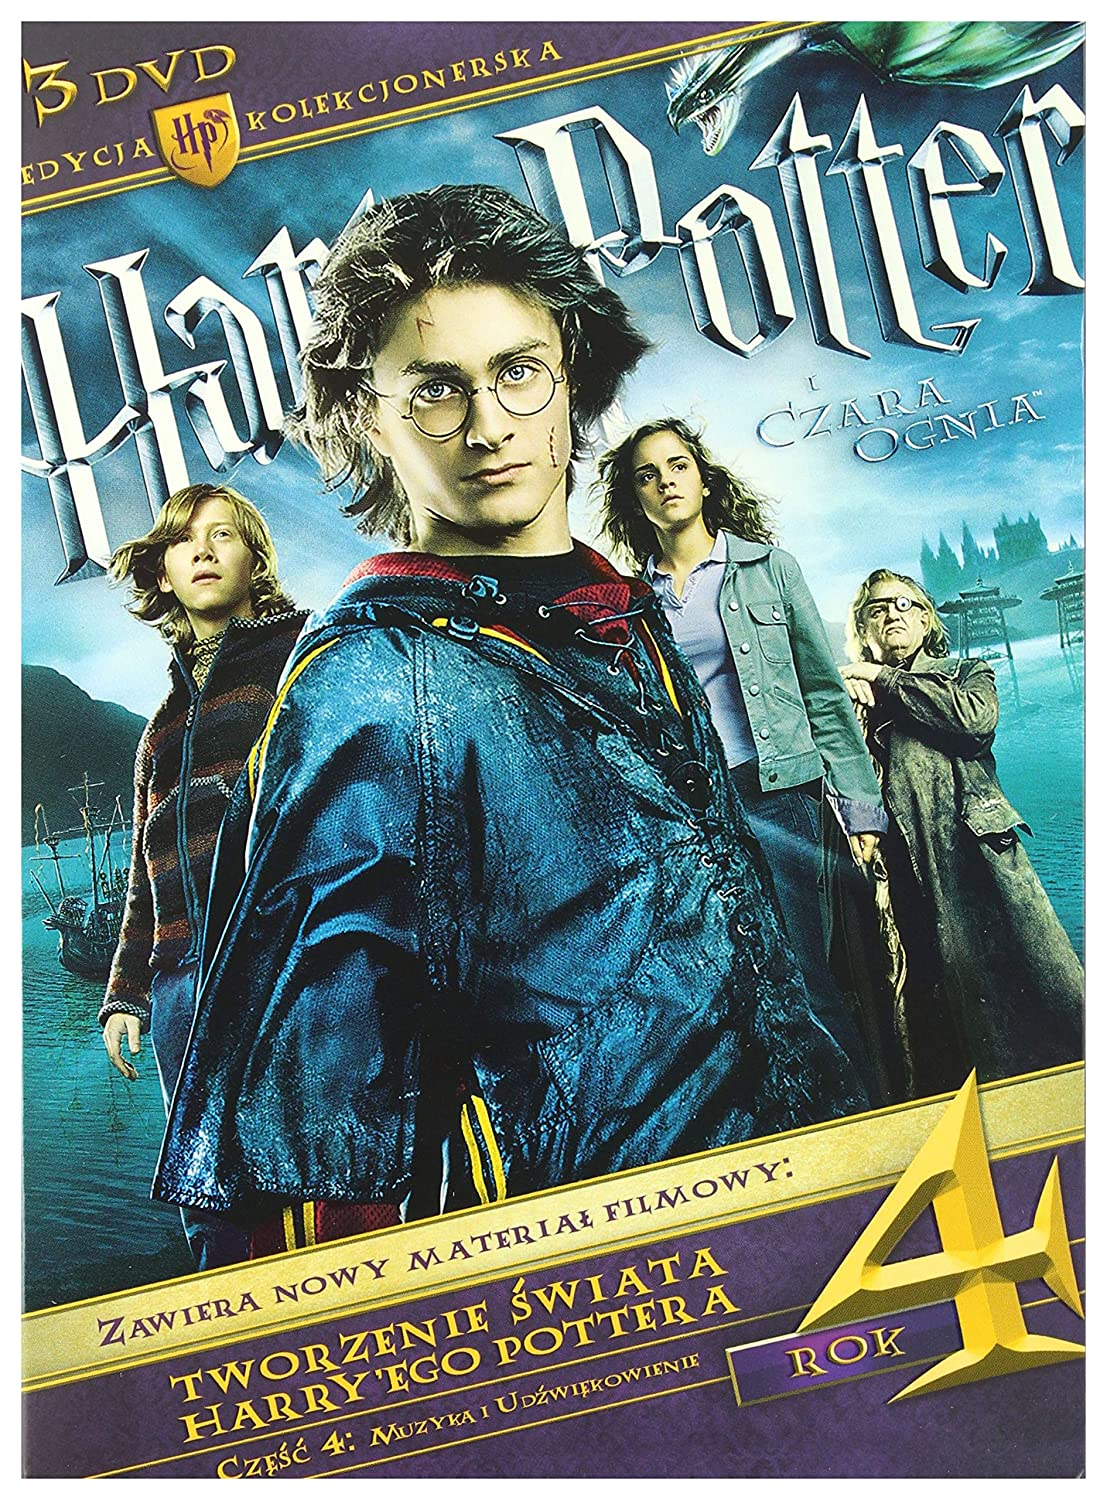 HARRY POTTER: GOBLET OF FIRE CE-HARRY POTTER I CZARA OGNIA: EK ...